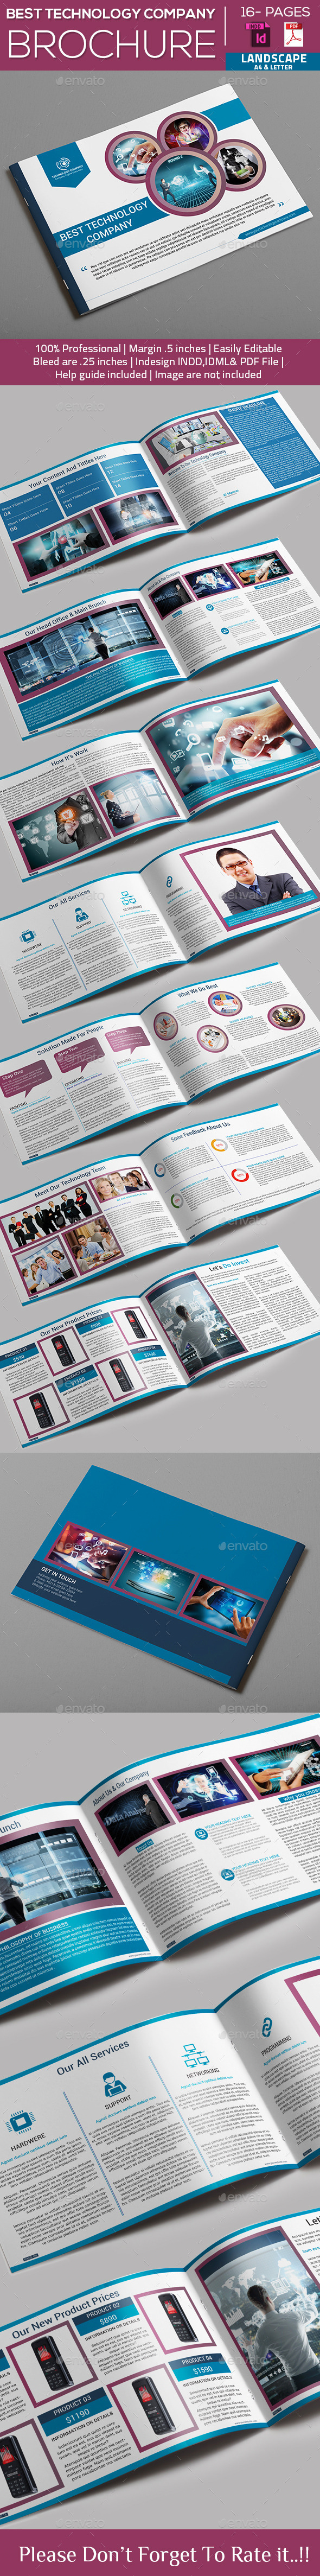 Technology Company Brochure - Catalogs Brochures